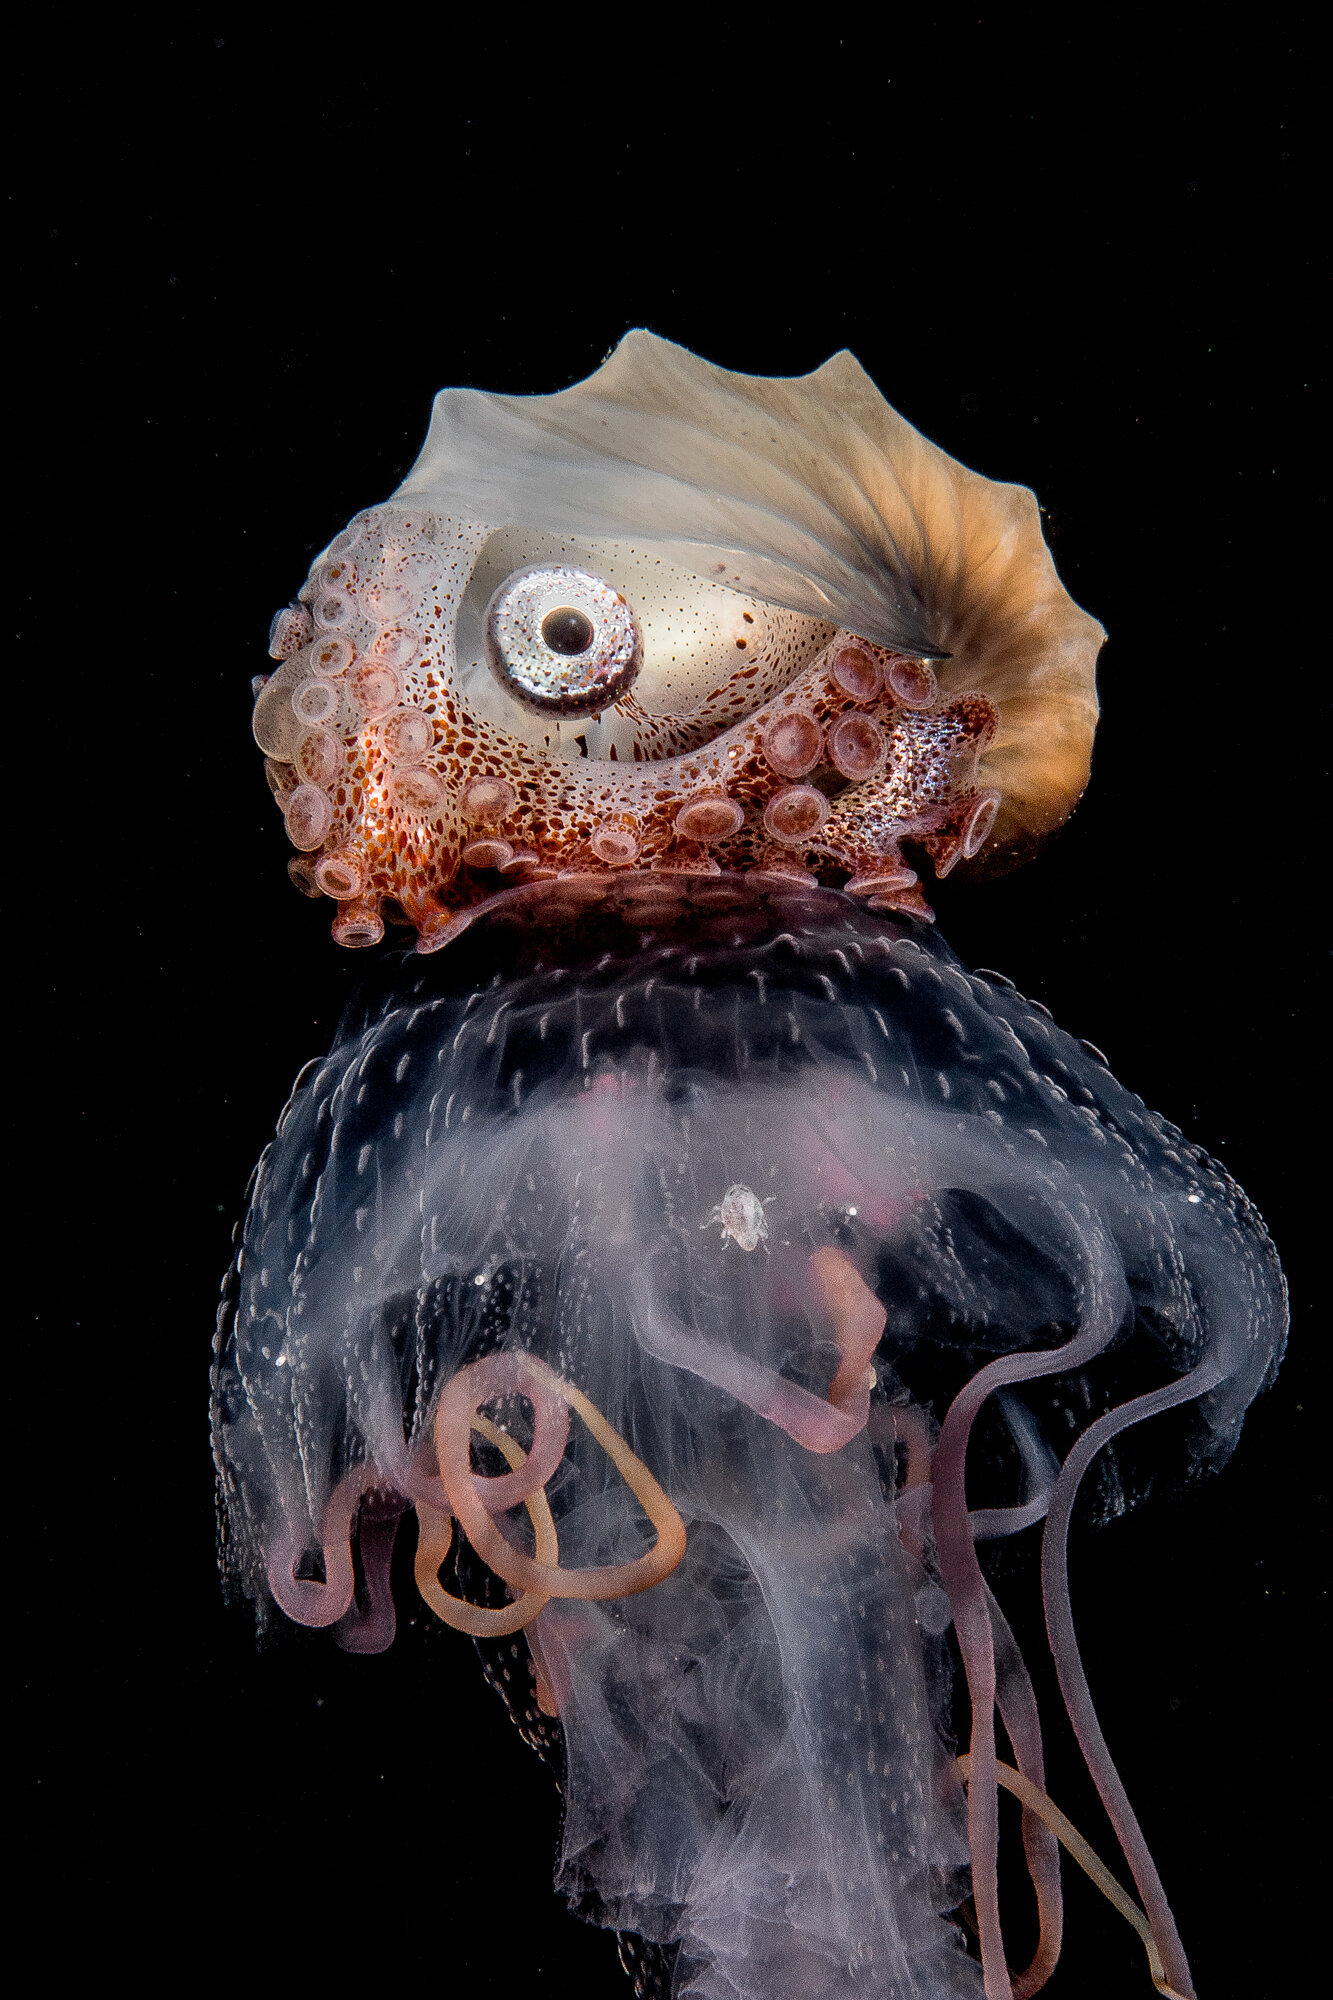 Jellyfish and Nautilus Credit: Mike Bartick / Coral Reef Image Bank